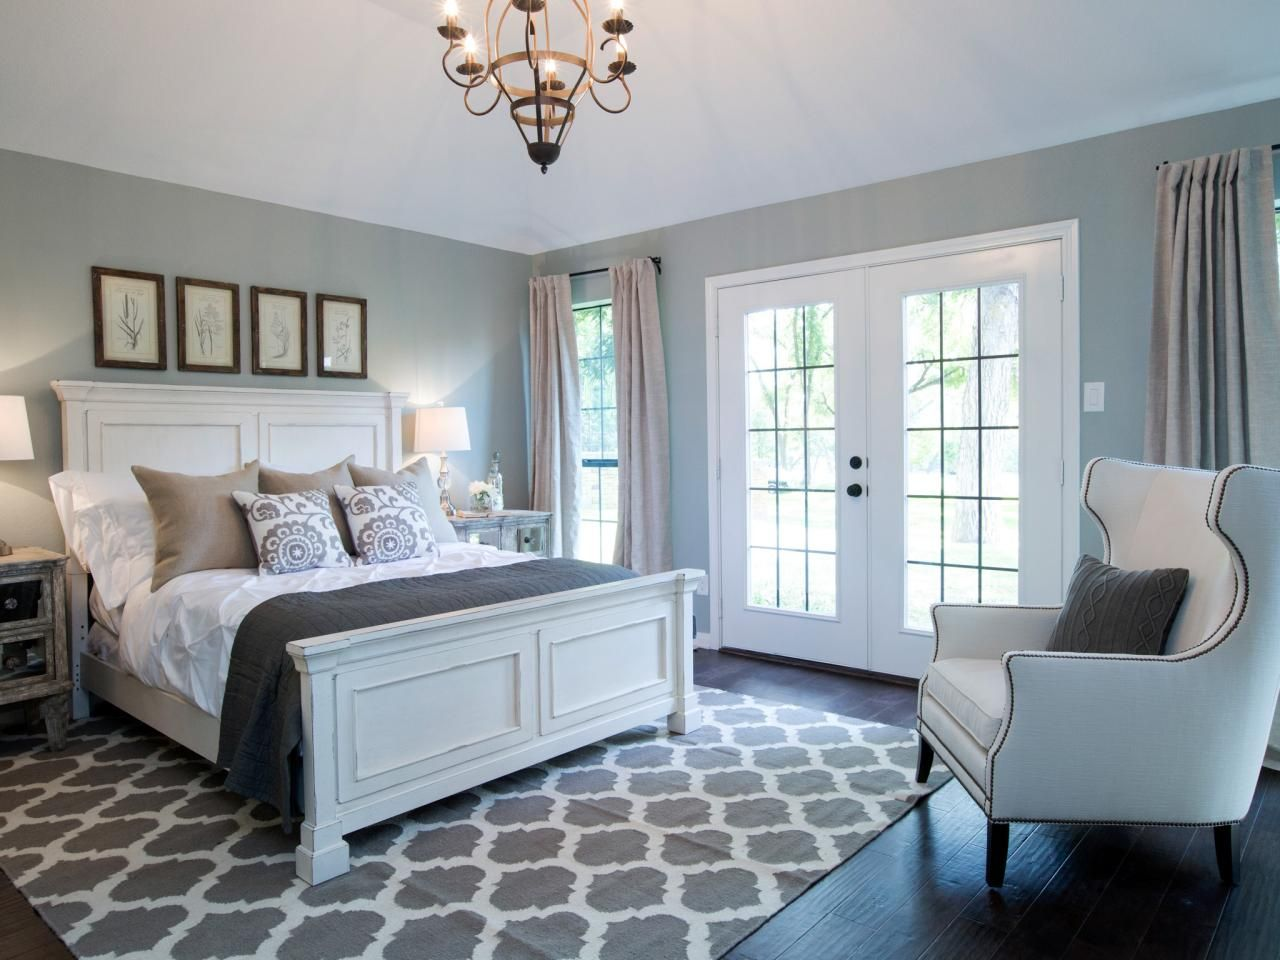 Attirant Pretty And Relaxing Master Bedroom By Fixer Upper. Farmhouse But Not Too  Country #bedroomdecor